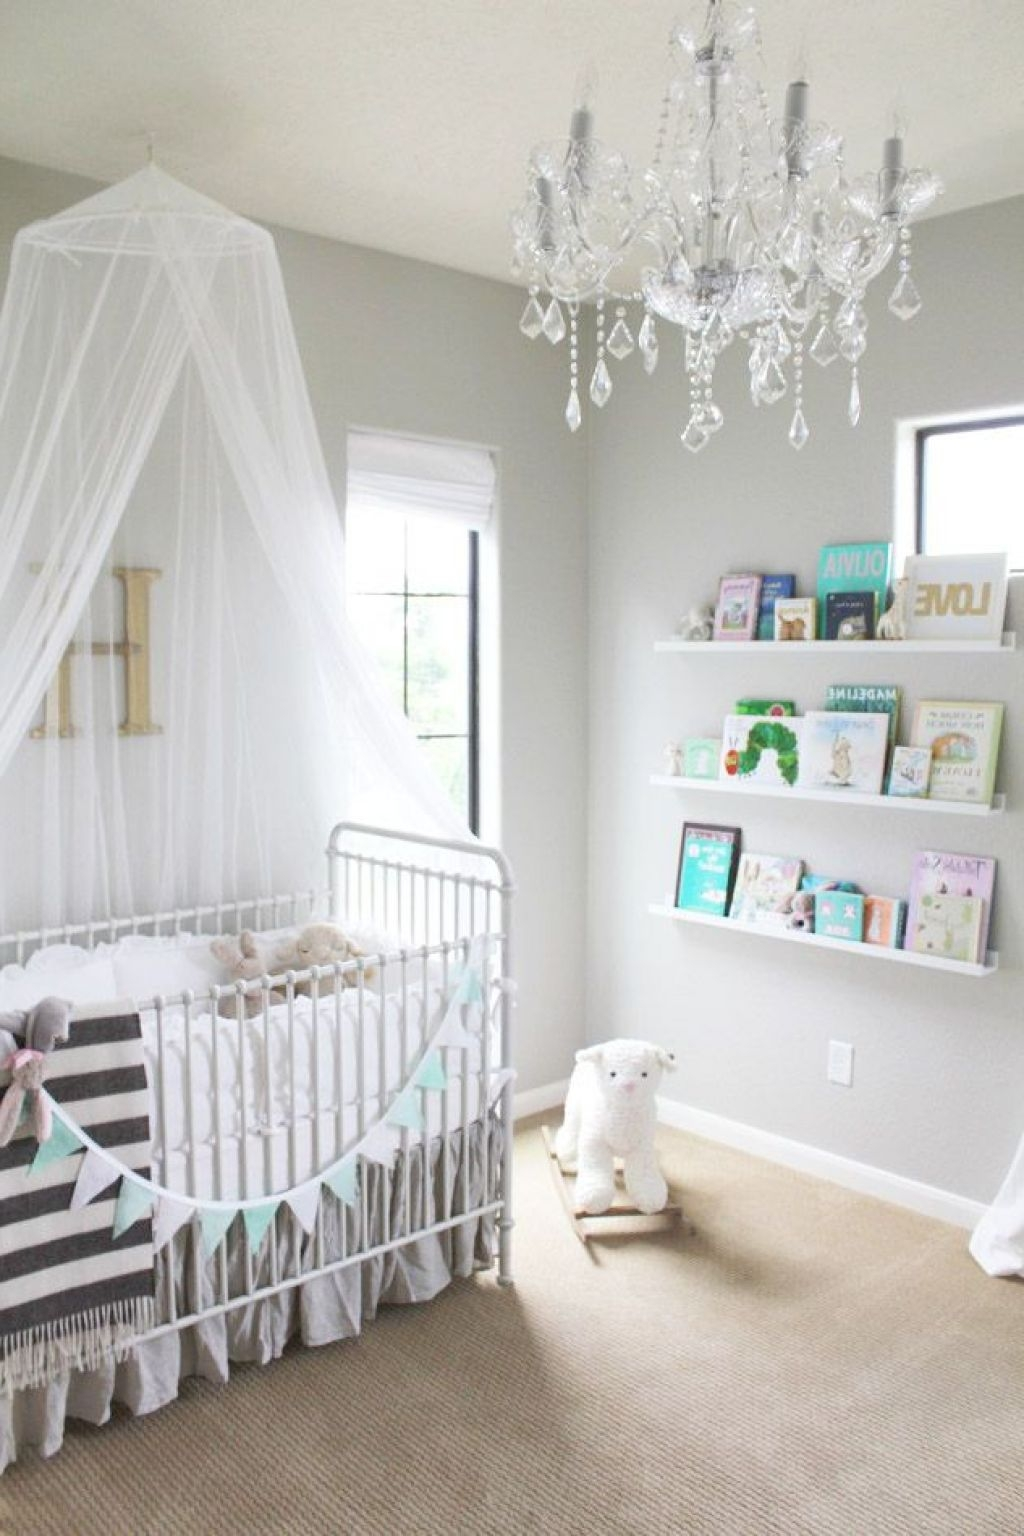 Featured Image of Mini Chandeliers For Nursery